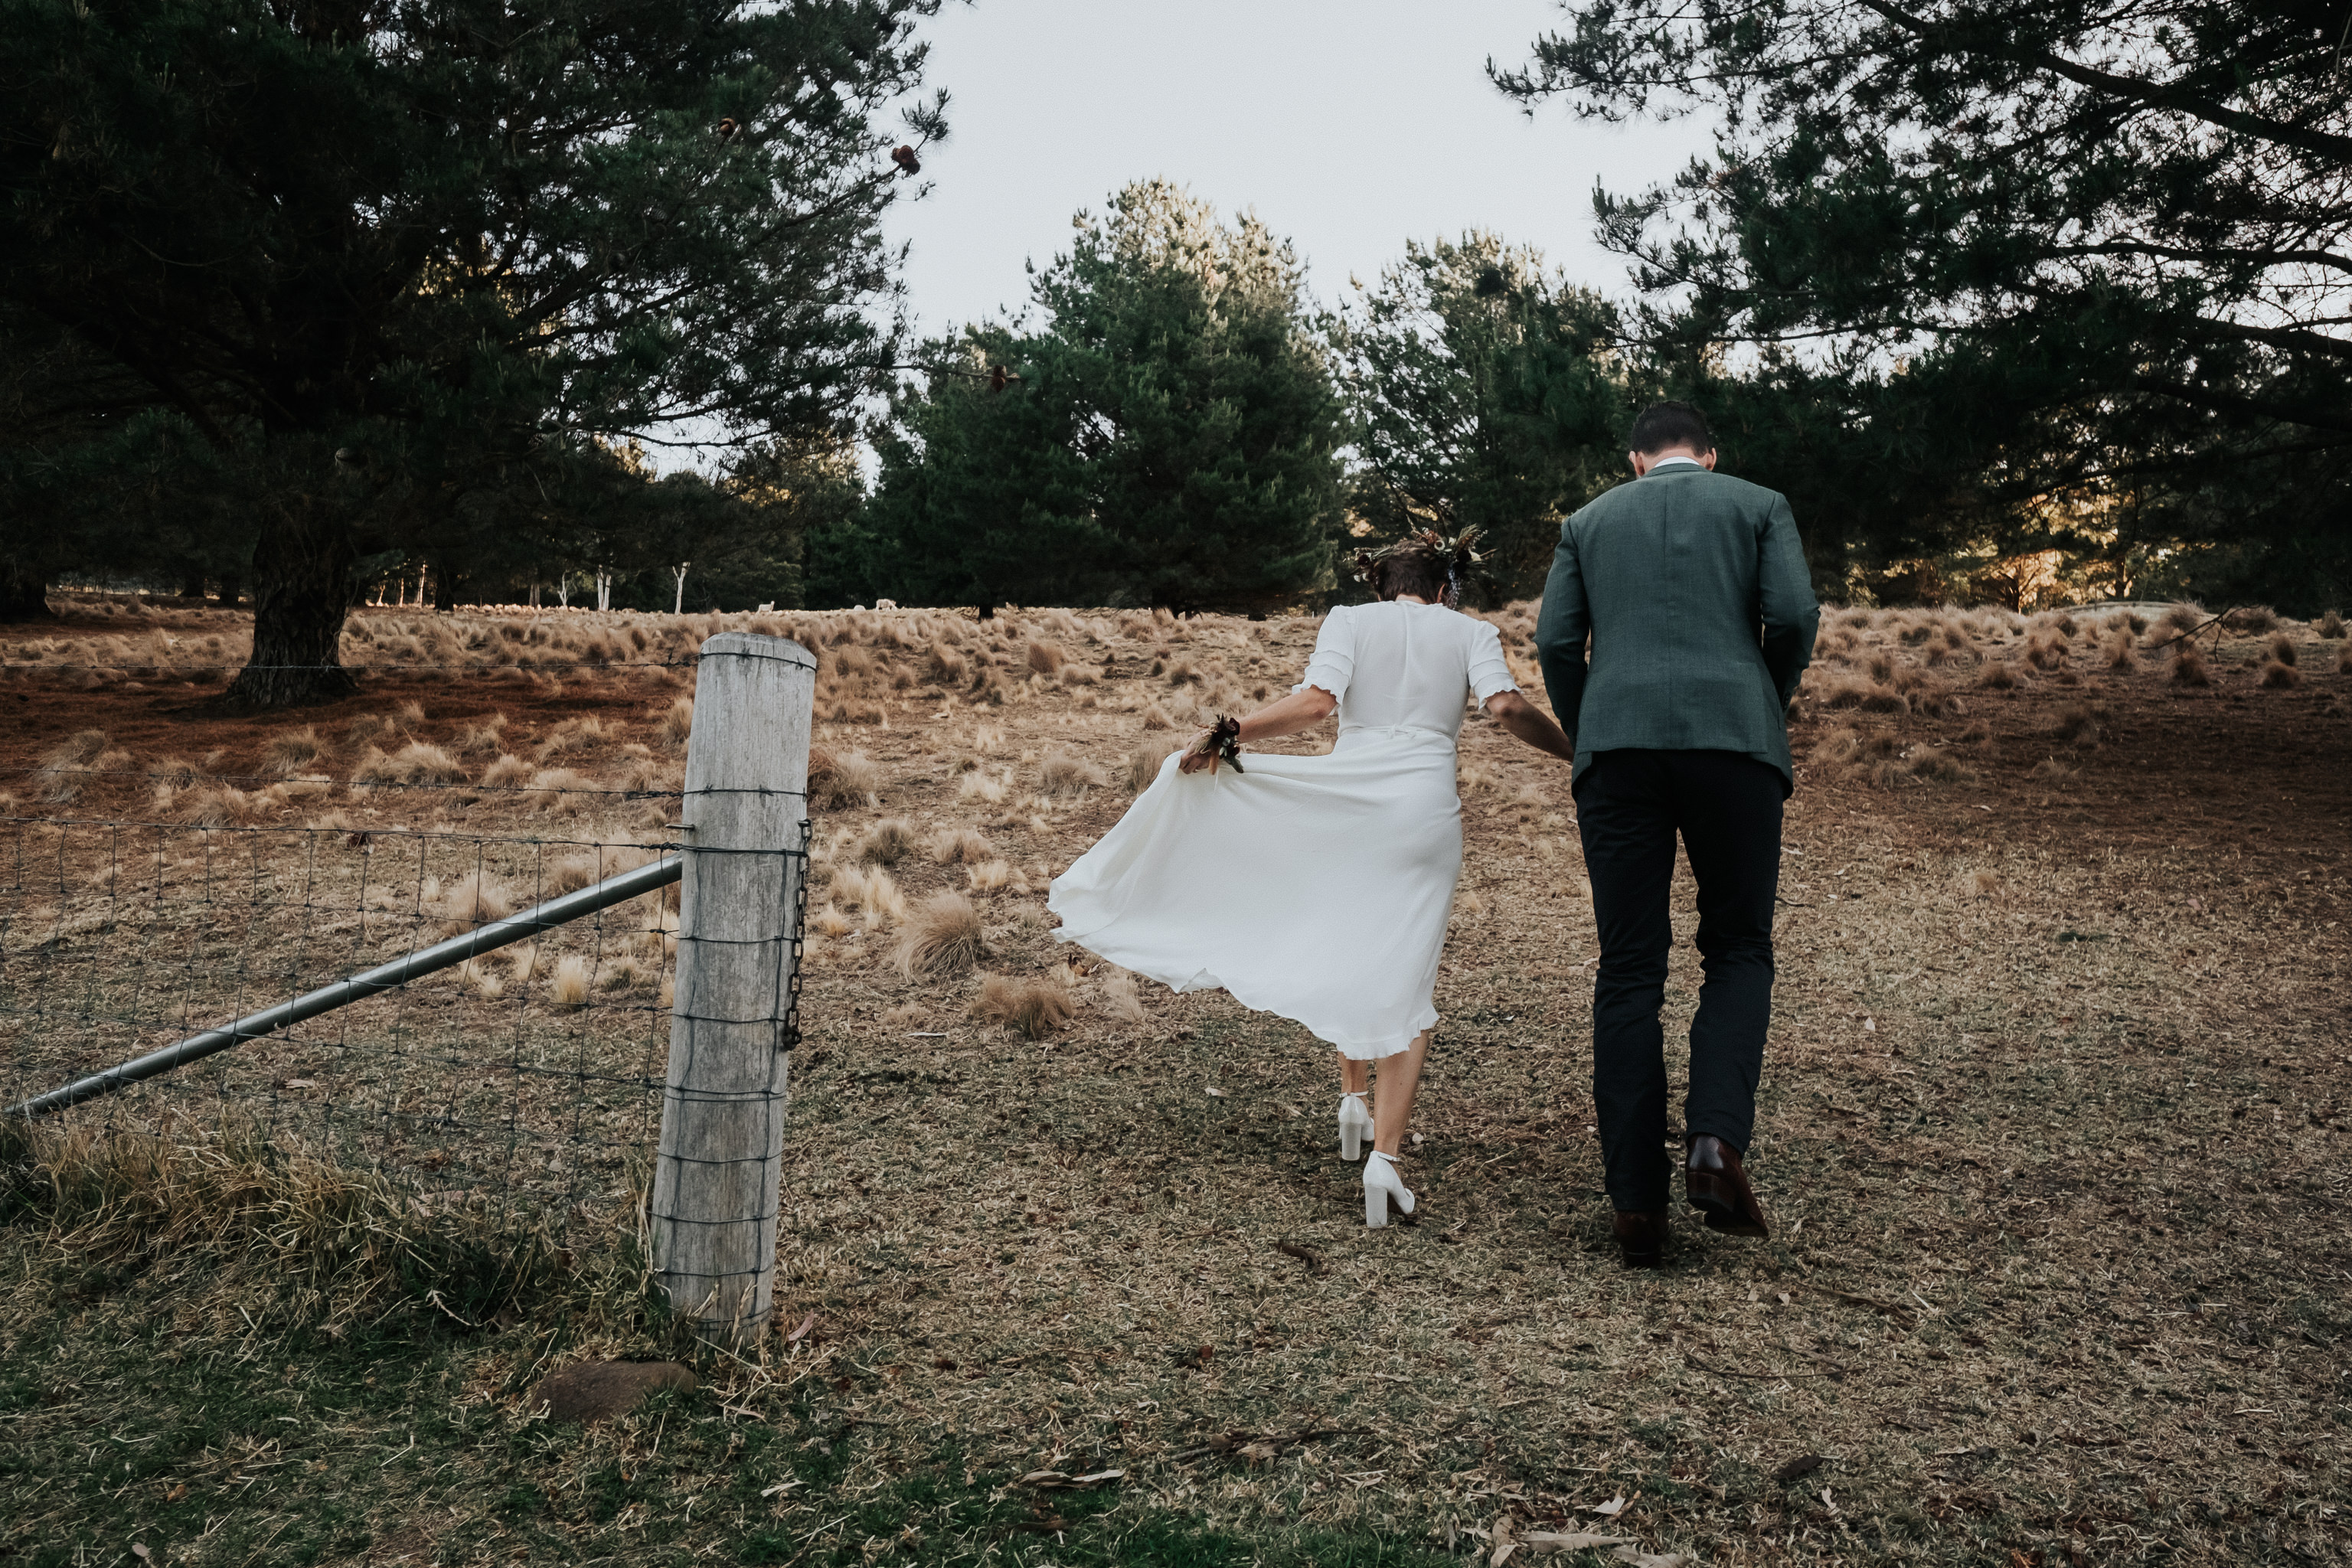 Bride and groom walking up hill holding skirt